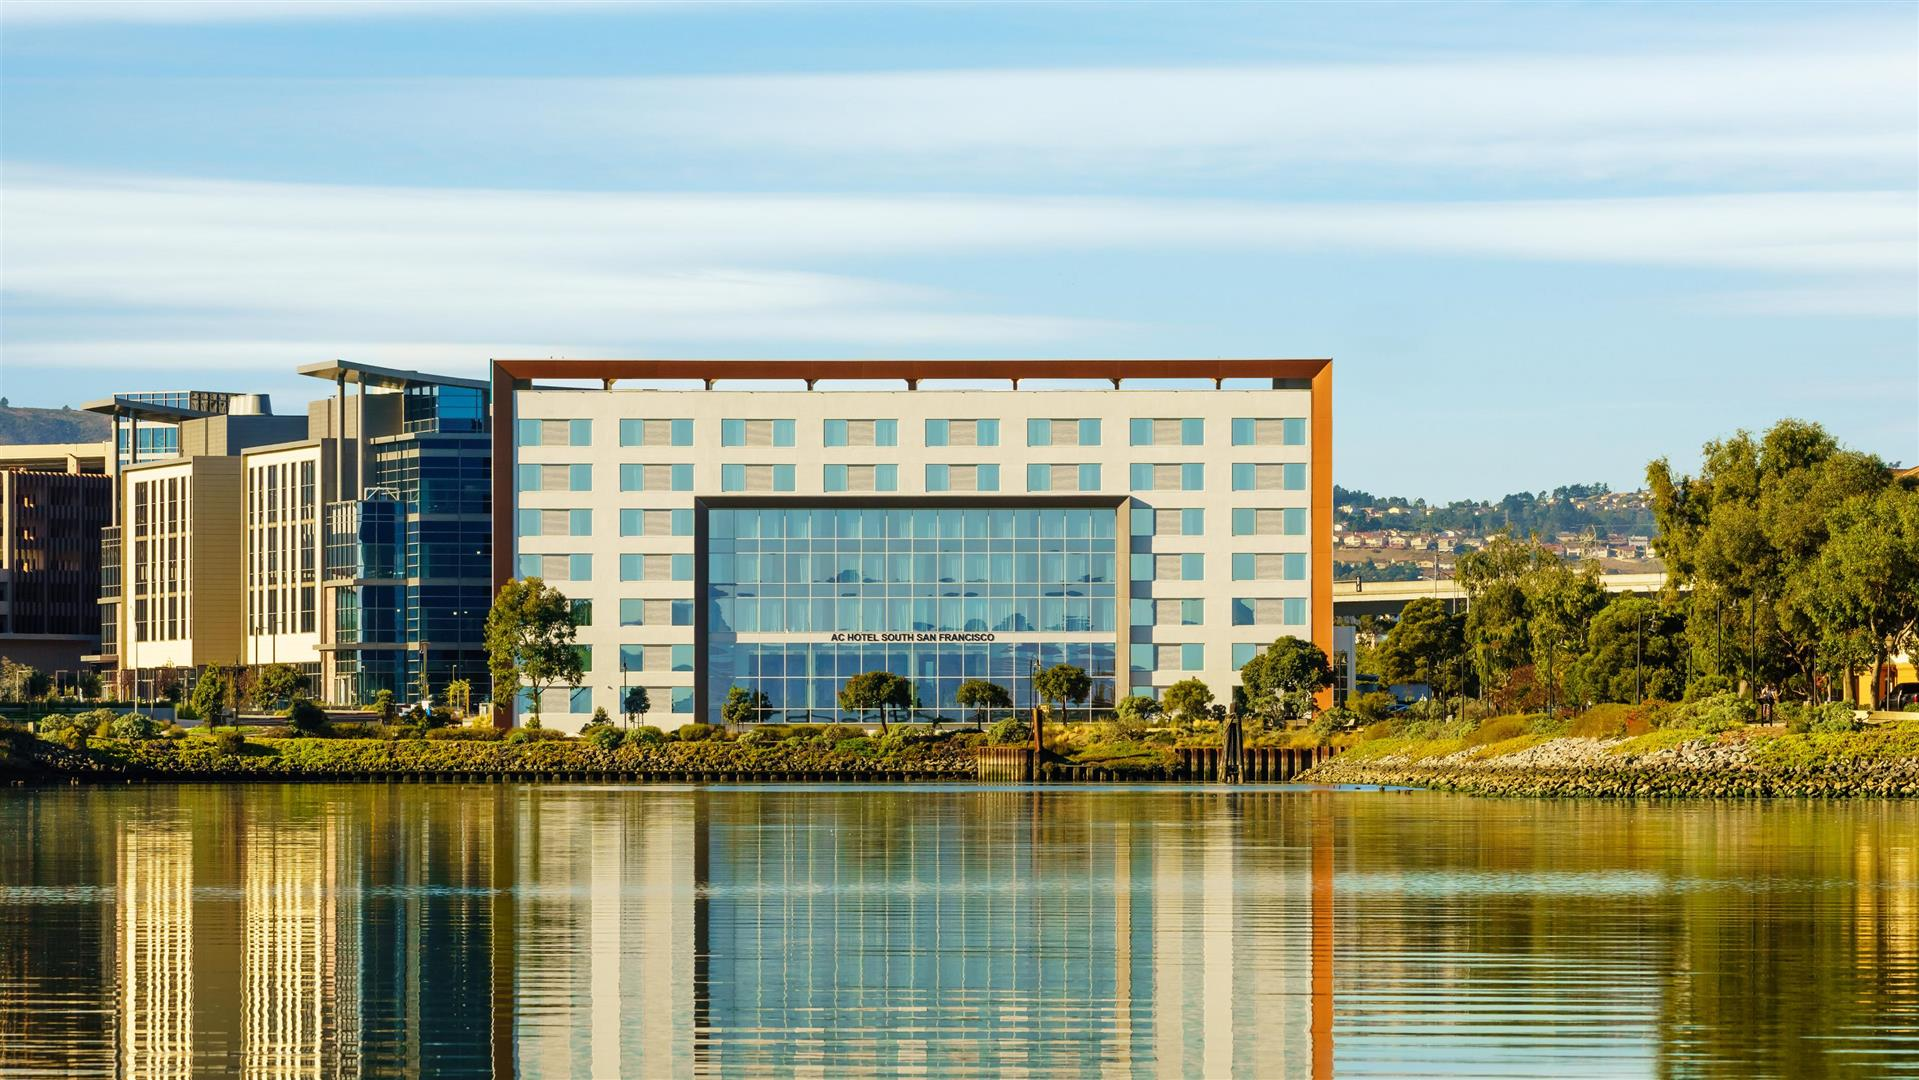 Meetings And Events At Ac Hotel San Francisco Airport Oyster Point Waterfront South San Francisco Ca Us